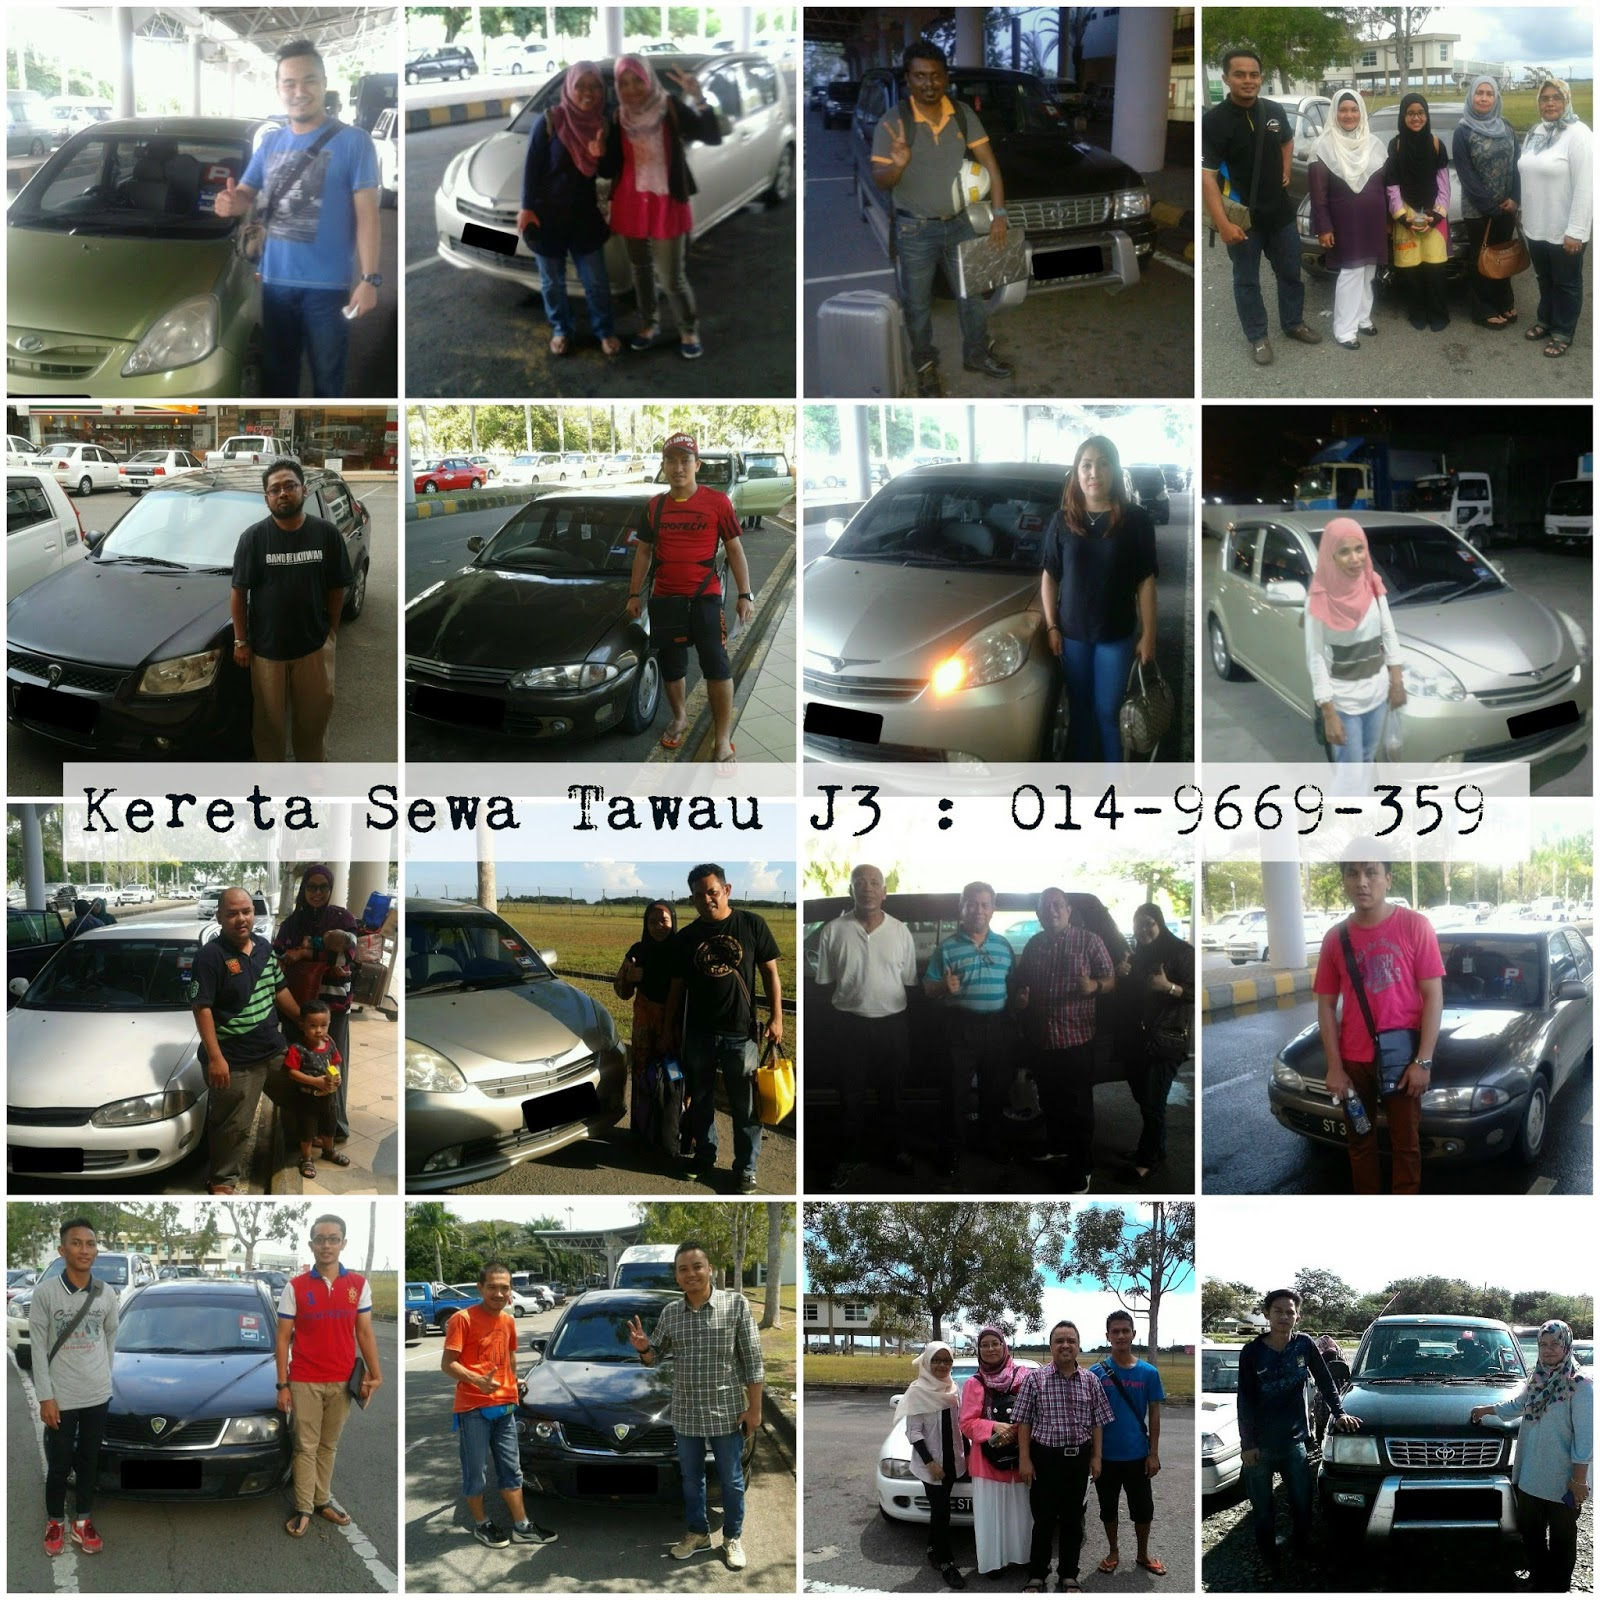 Low Cost Rent: Tawau Low Cost Car Rental Service: J3 Tawau Car Rental